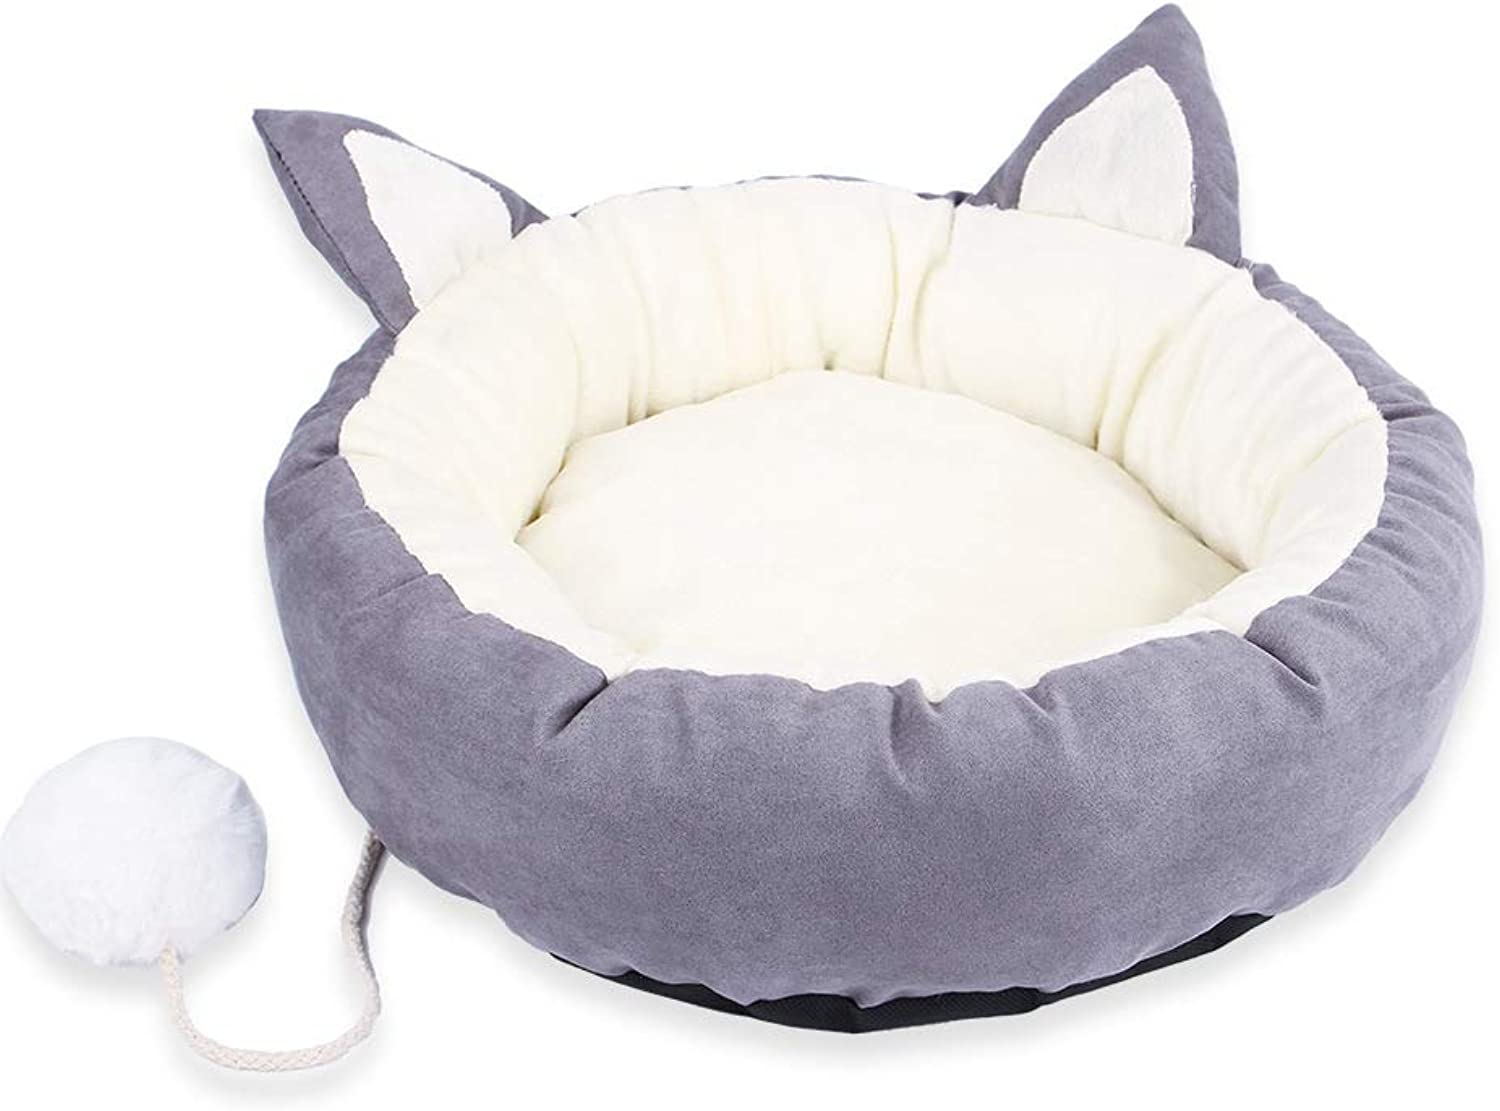 Dog Bed Donut Cat Bed, Faux Fur Dog Beds for Medium Small Dogs  Self Warming Indoor Round Pillow Cuddler